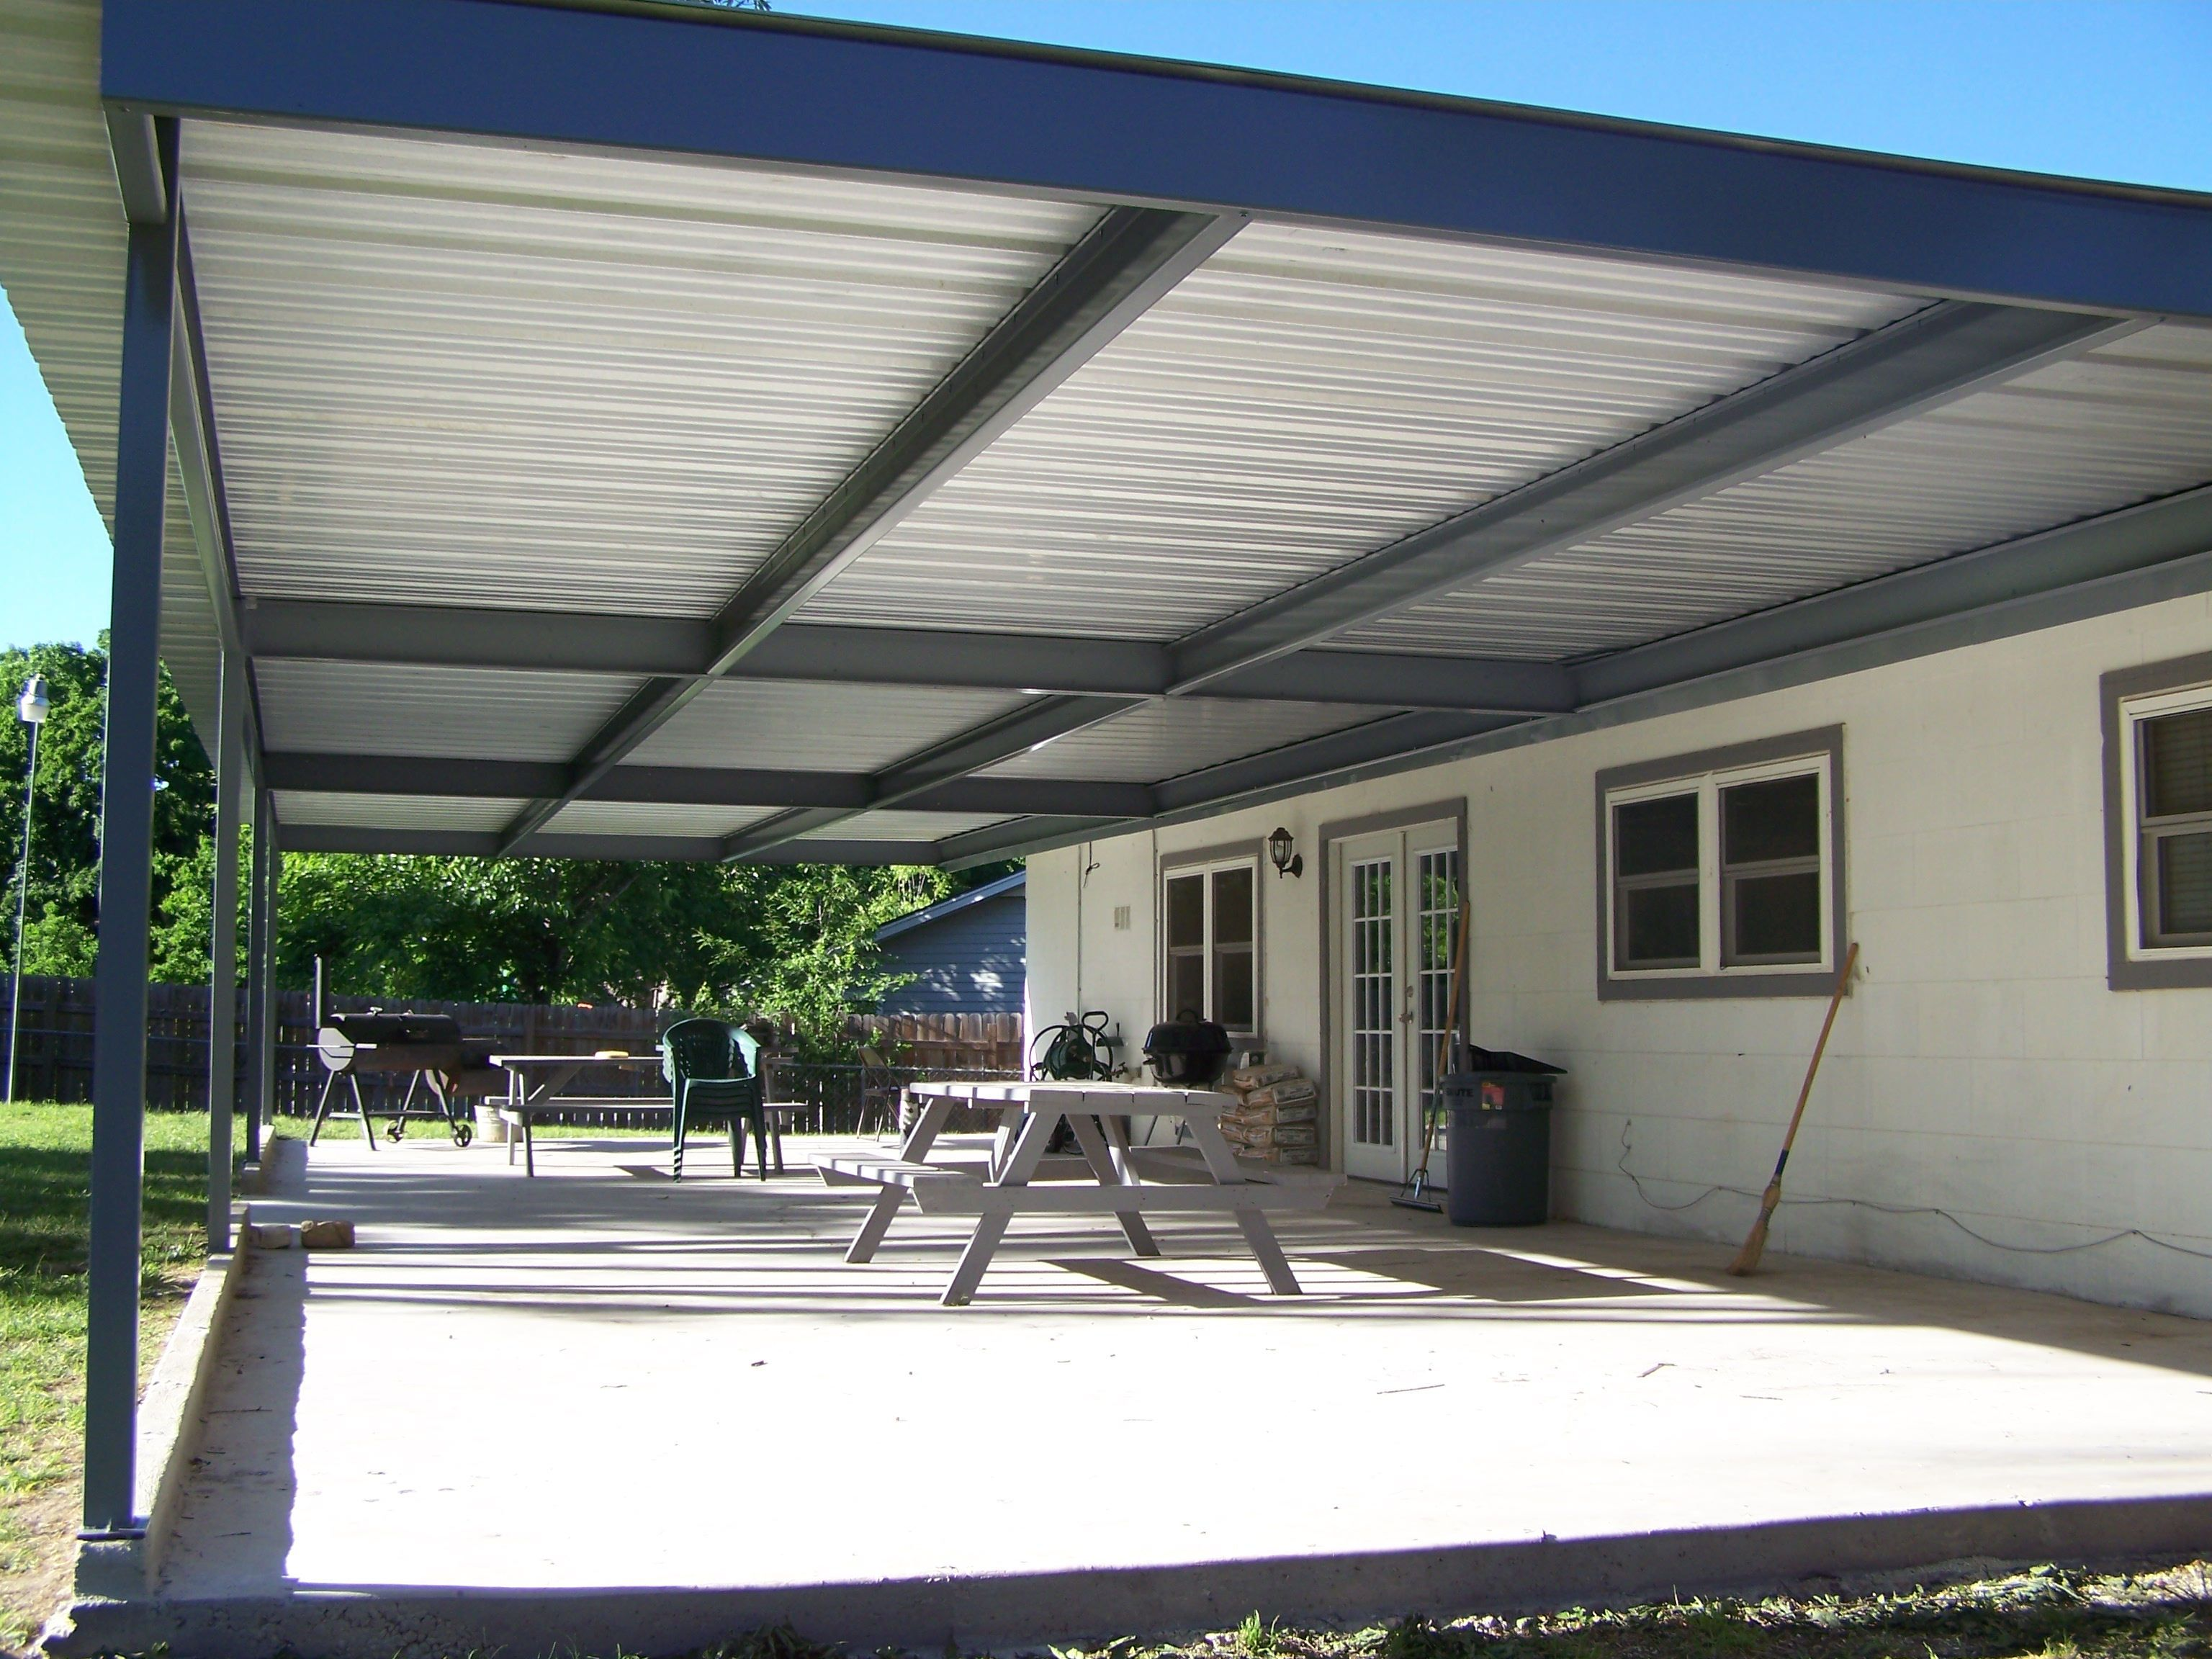 Wonderful Exterior Patio Awning Designs Build An Awning Over Patio Awning Over Patio  Patio Awning Cover Patio Awning Functional Design For Any Patio Concepts